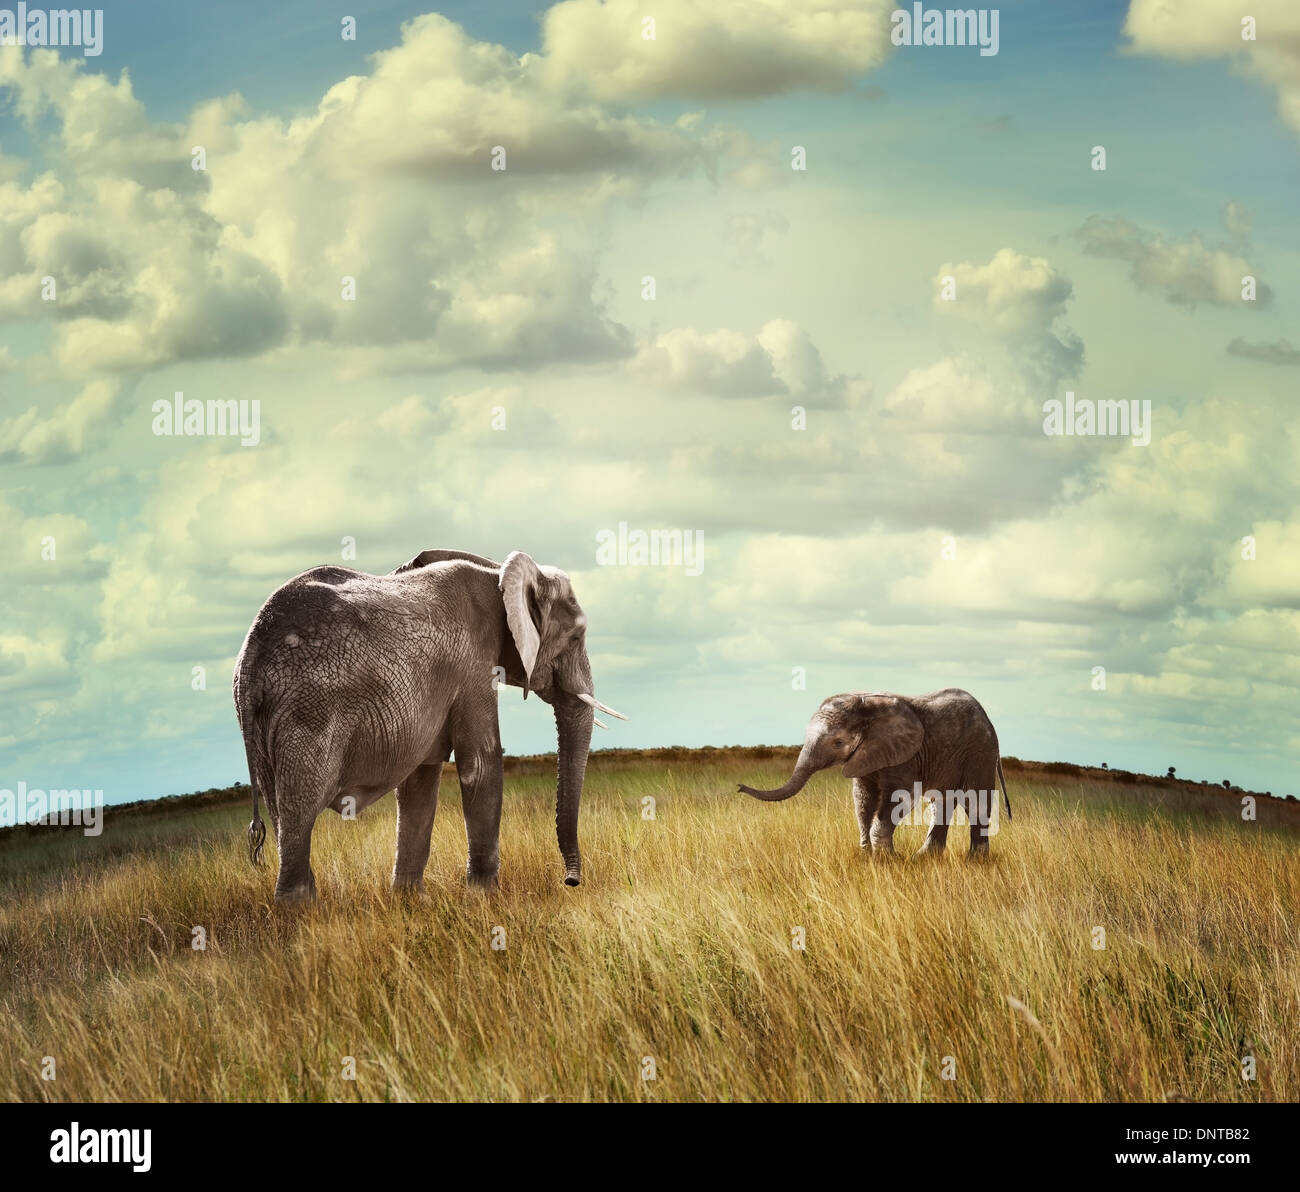 Young African Elephant With Mother - Stock Image